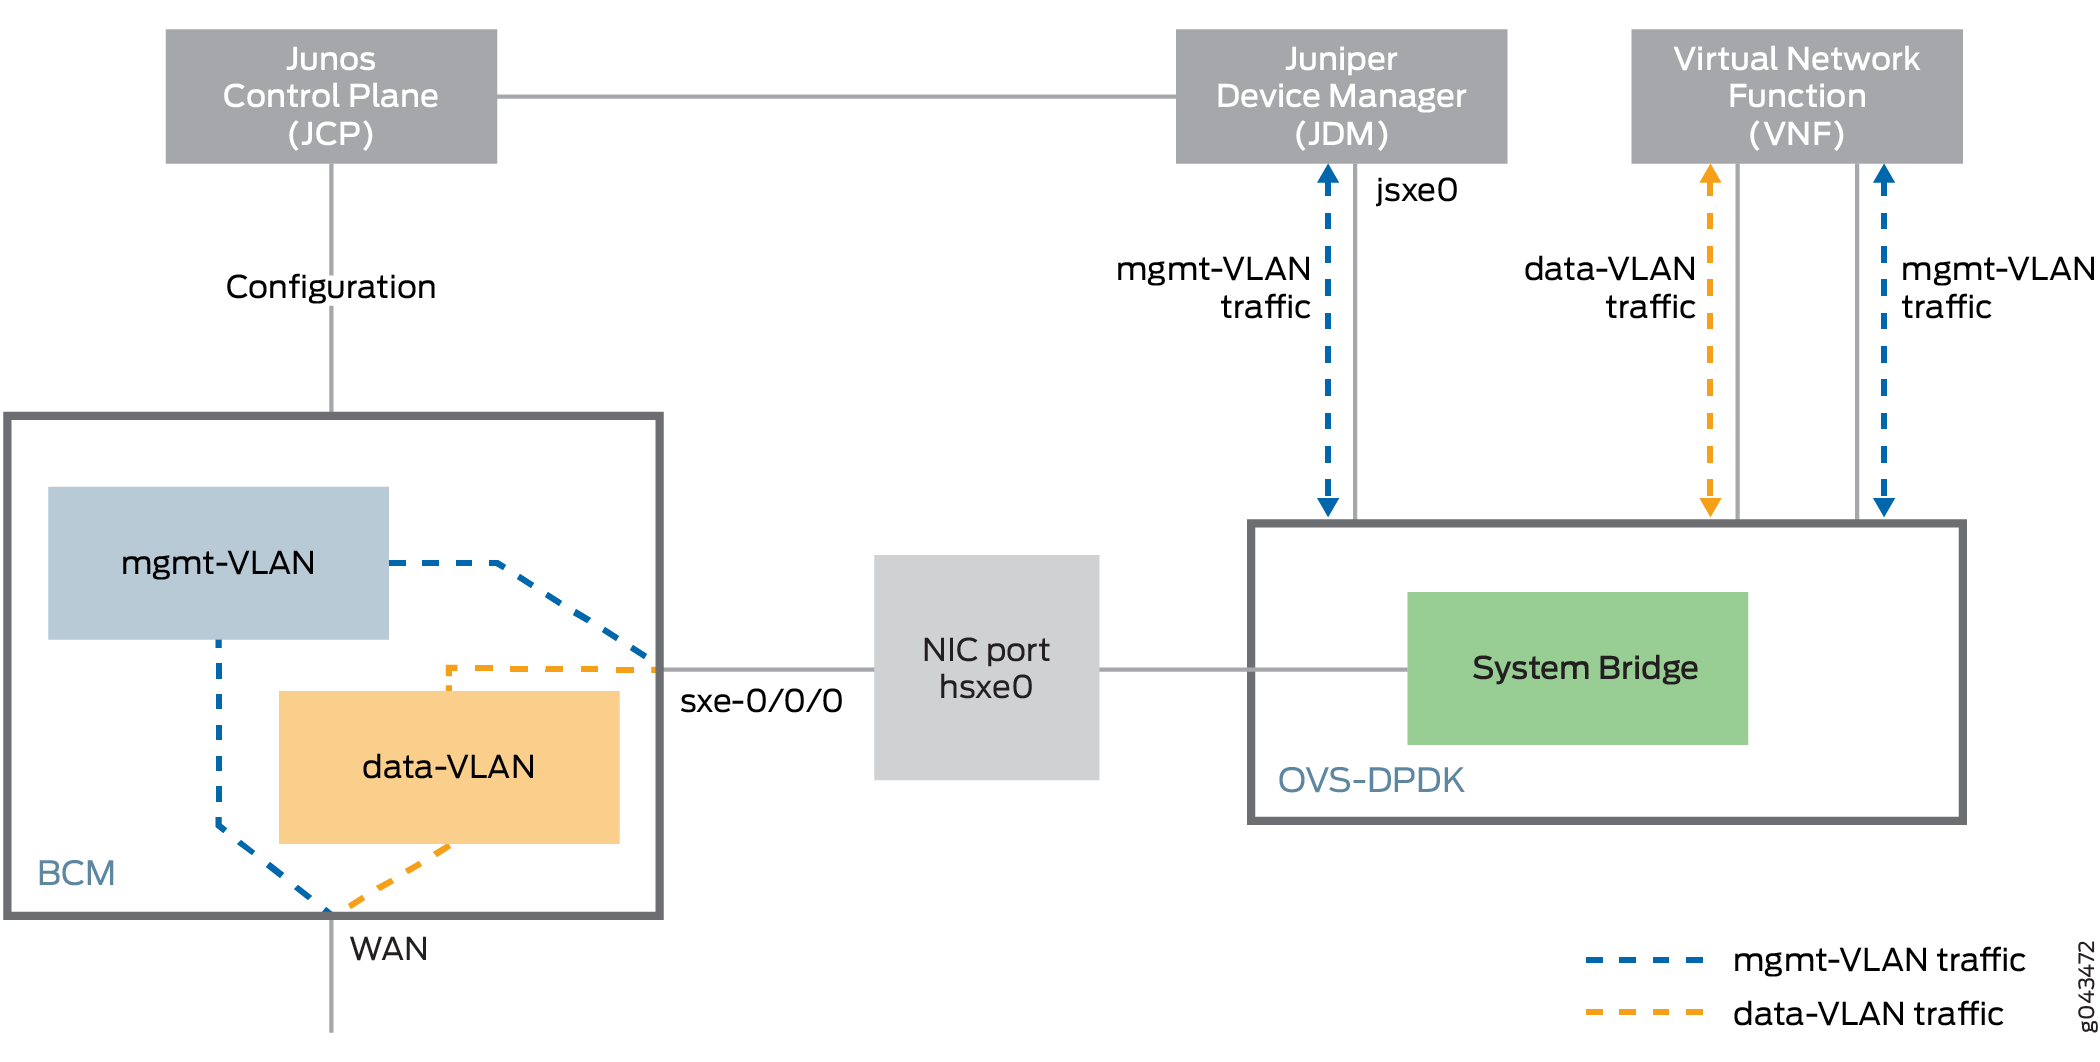 Configuring the In-Band Management Interface for JDM - TechLibrary